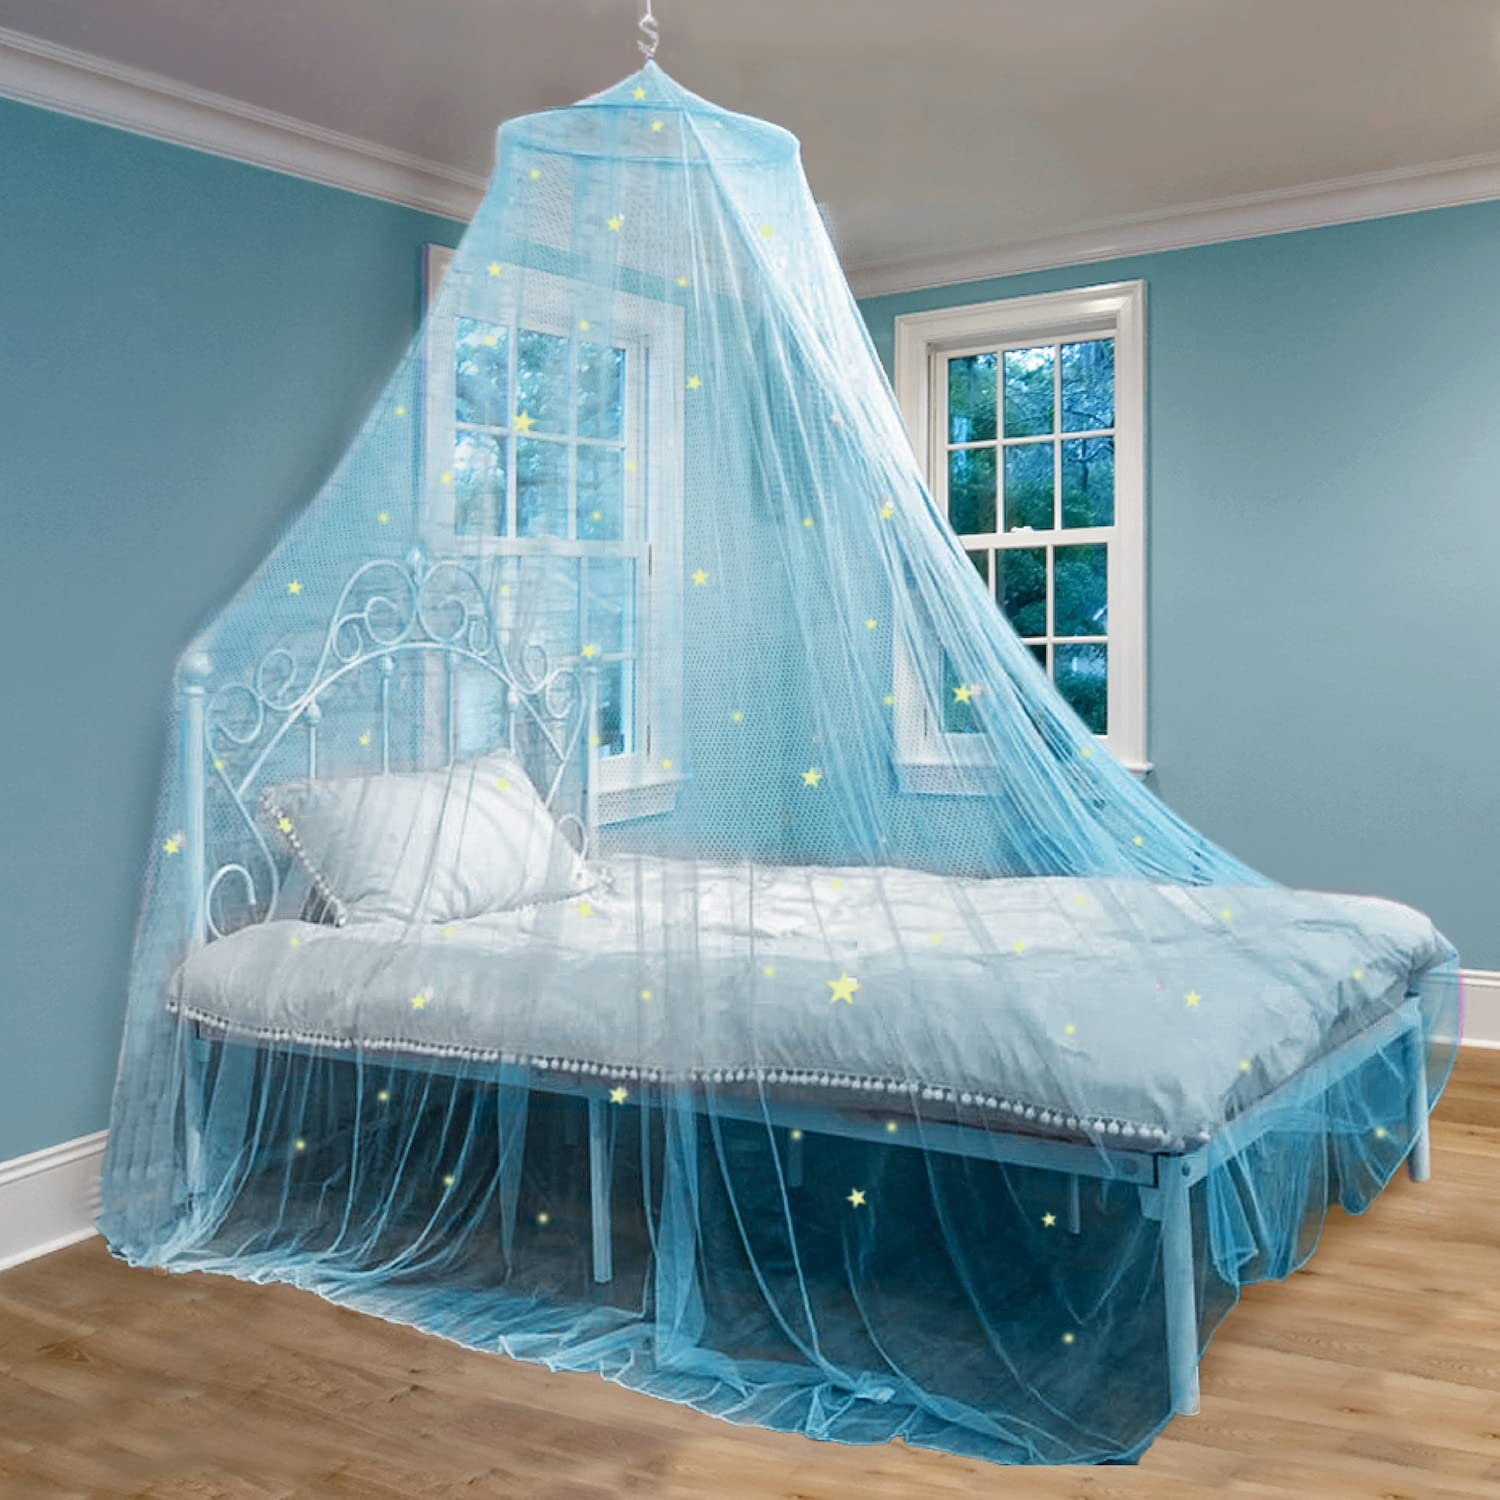 Bed Canopy with Glow in The Dark Stars for Girls, Kids and Babies, Net Use to Cover The Baby Crib, Kid Bed, Girls Bed Or Full Size Bed, Fire Retardant Fabric, Blue